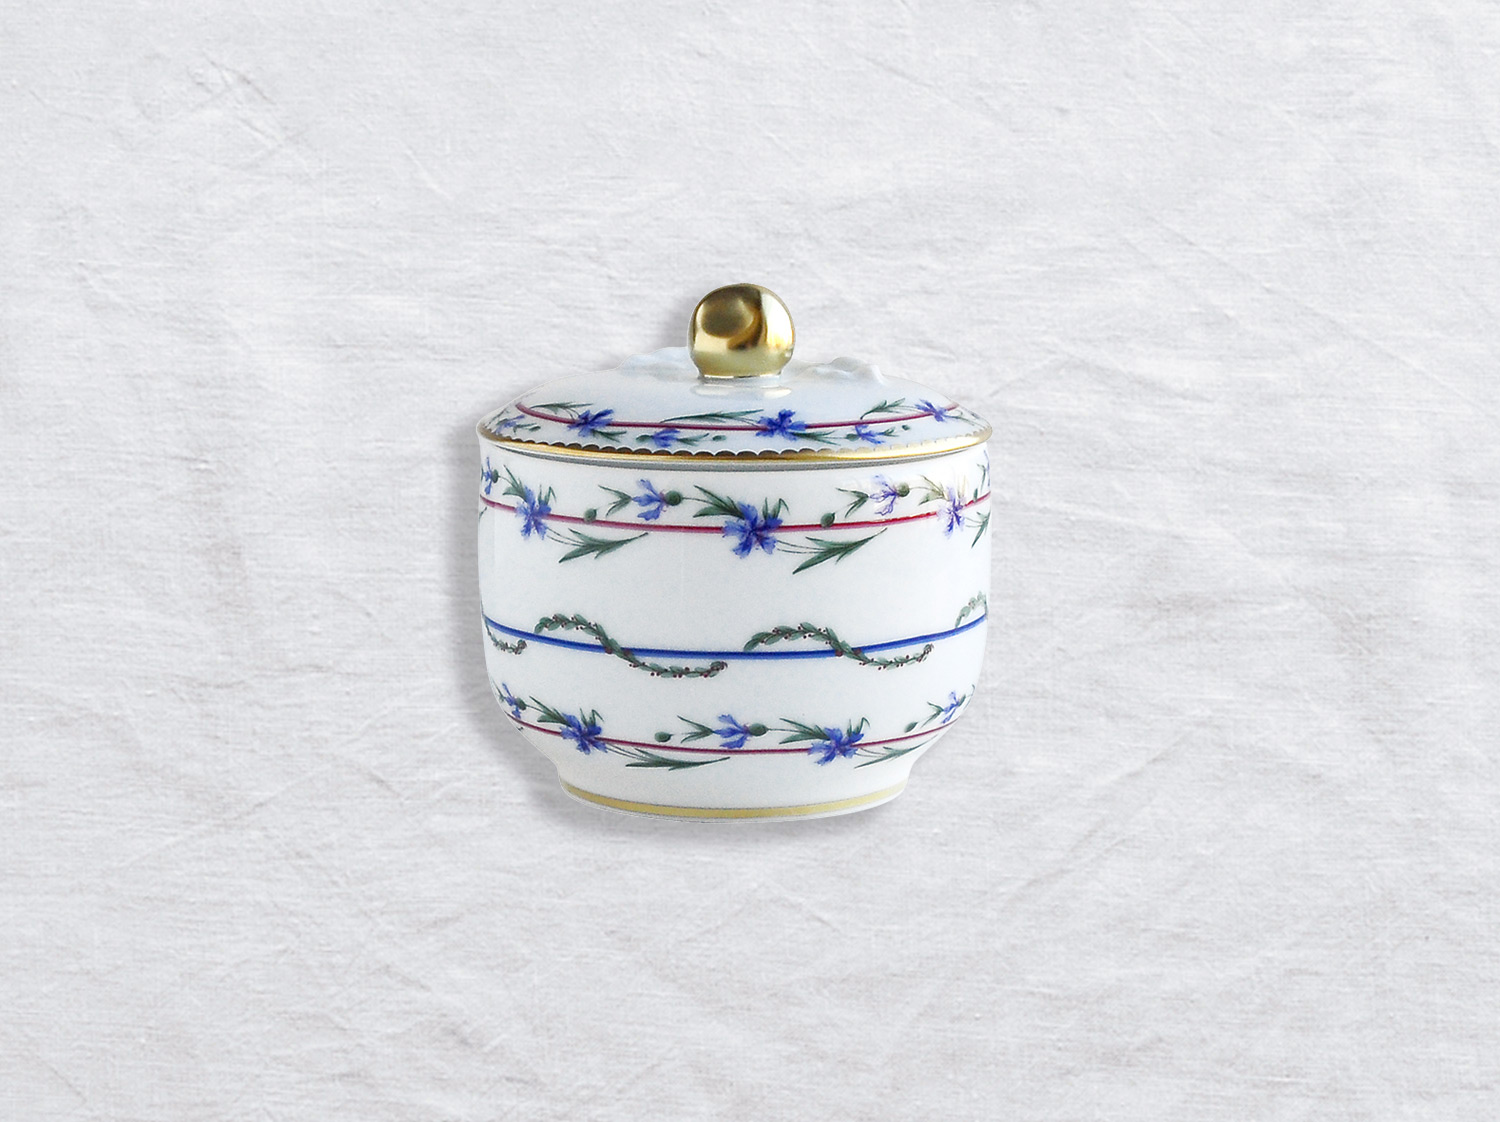 Pot a sucre 6 tasses en porcelaine de la collection Gobelet du roy Bernardaud